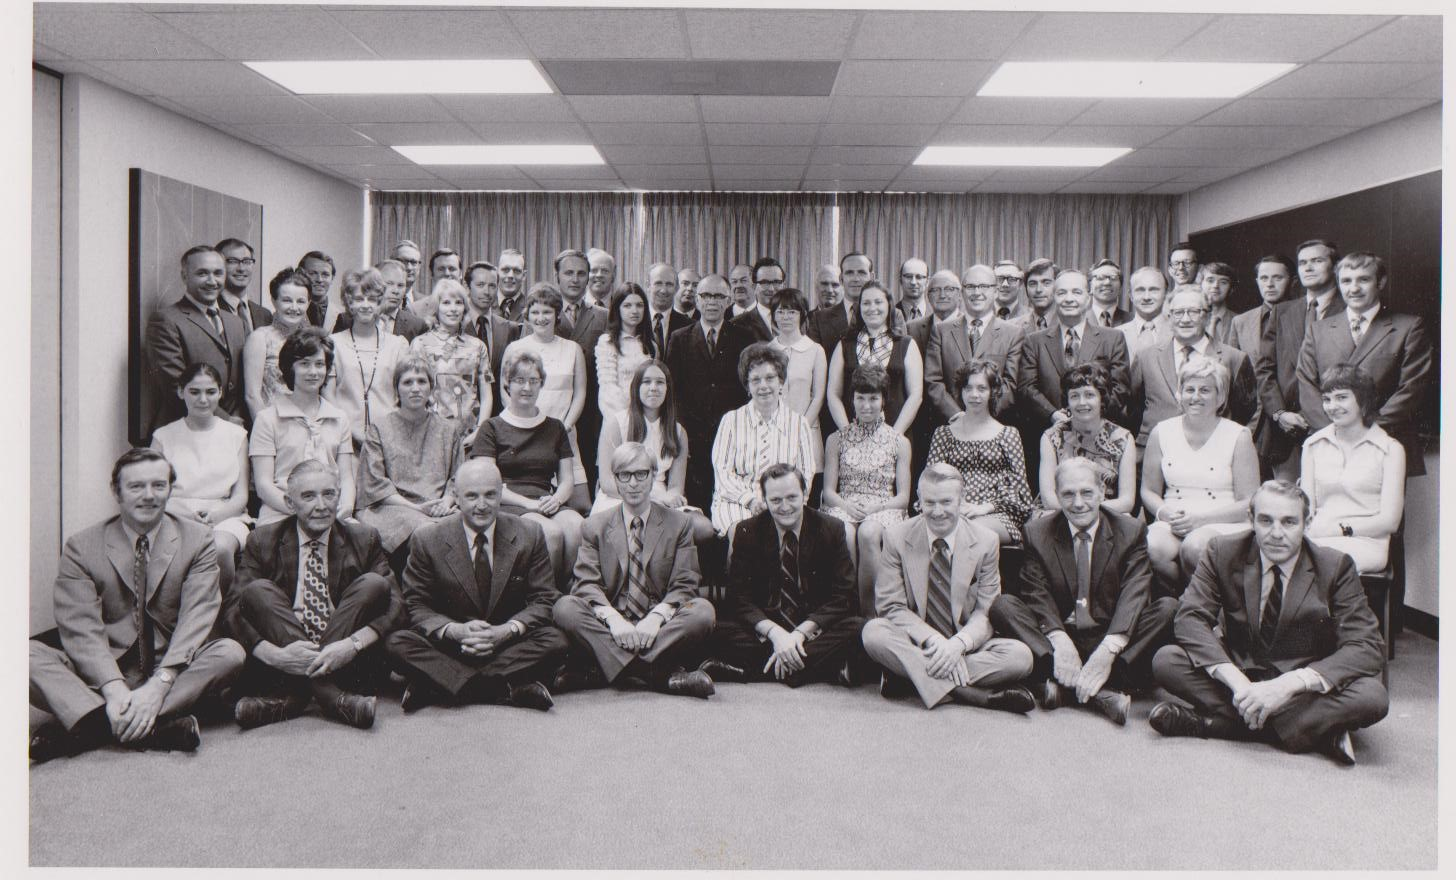 Department of Co-ordination and Career Services, now known as Co-operative Education & Career Action, in early 70's